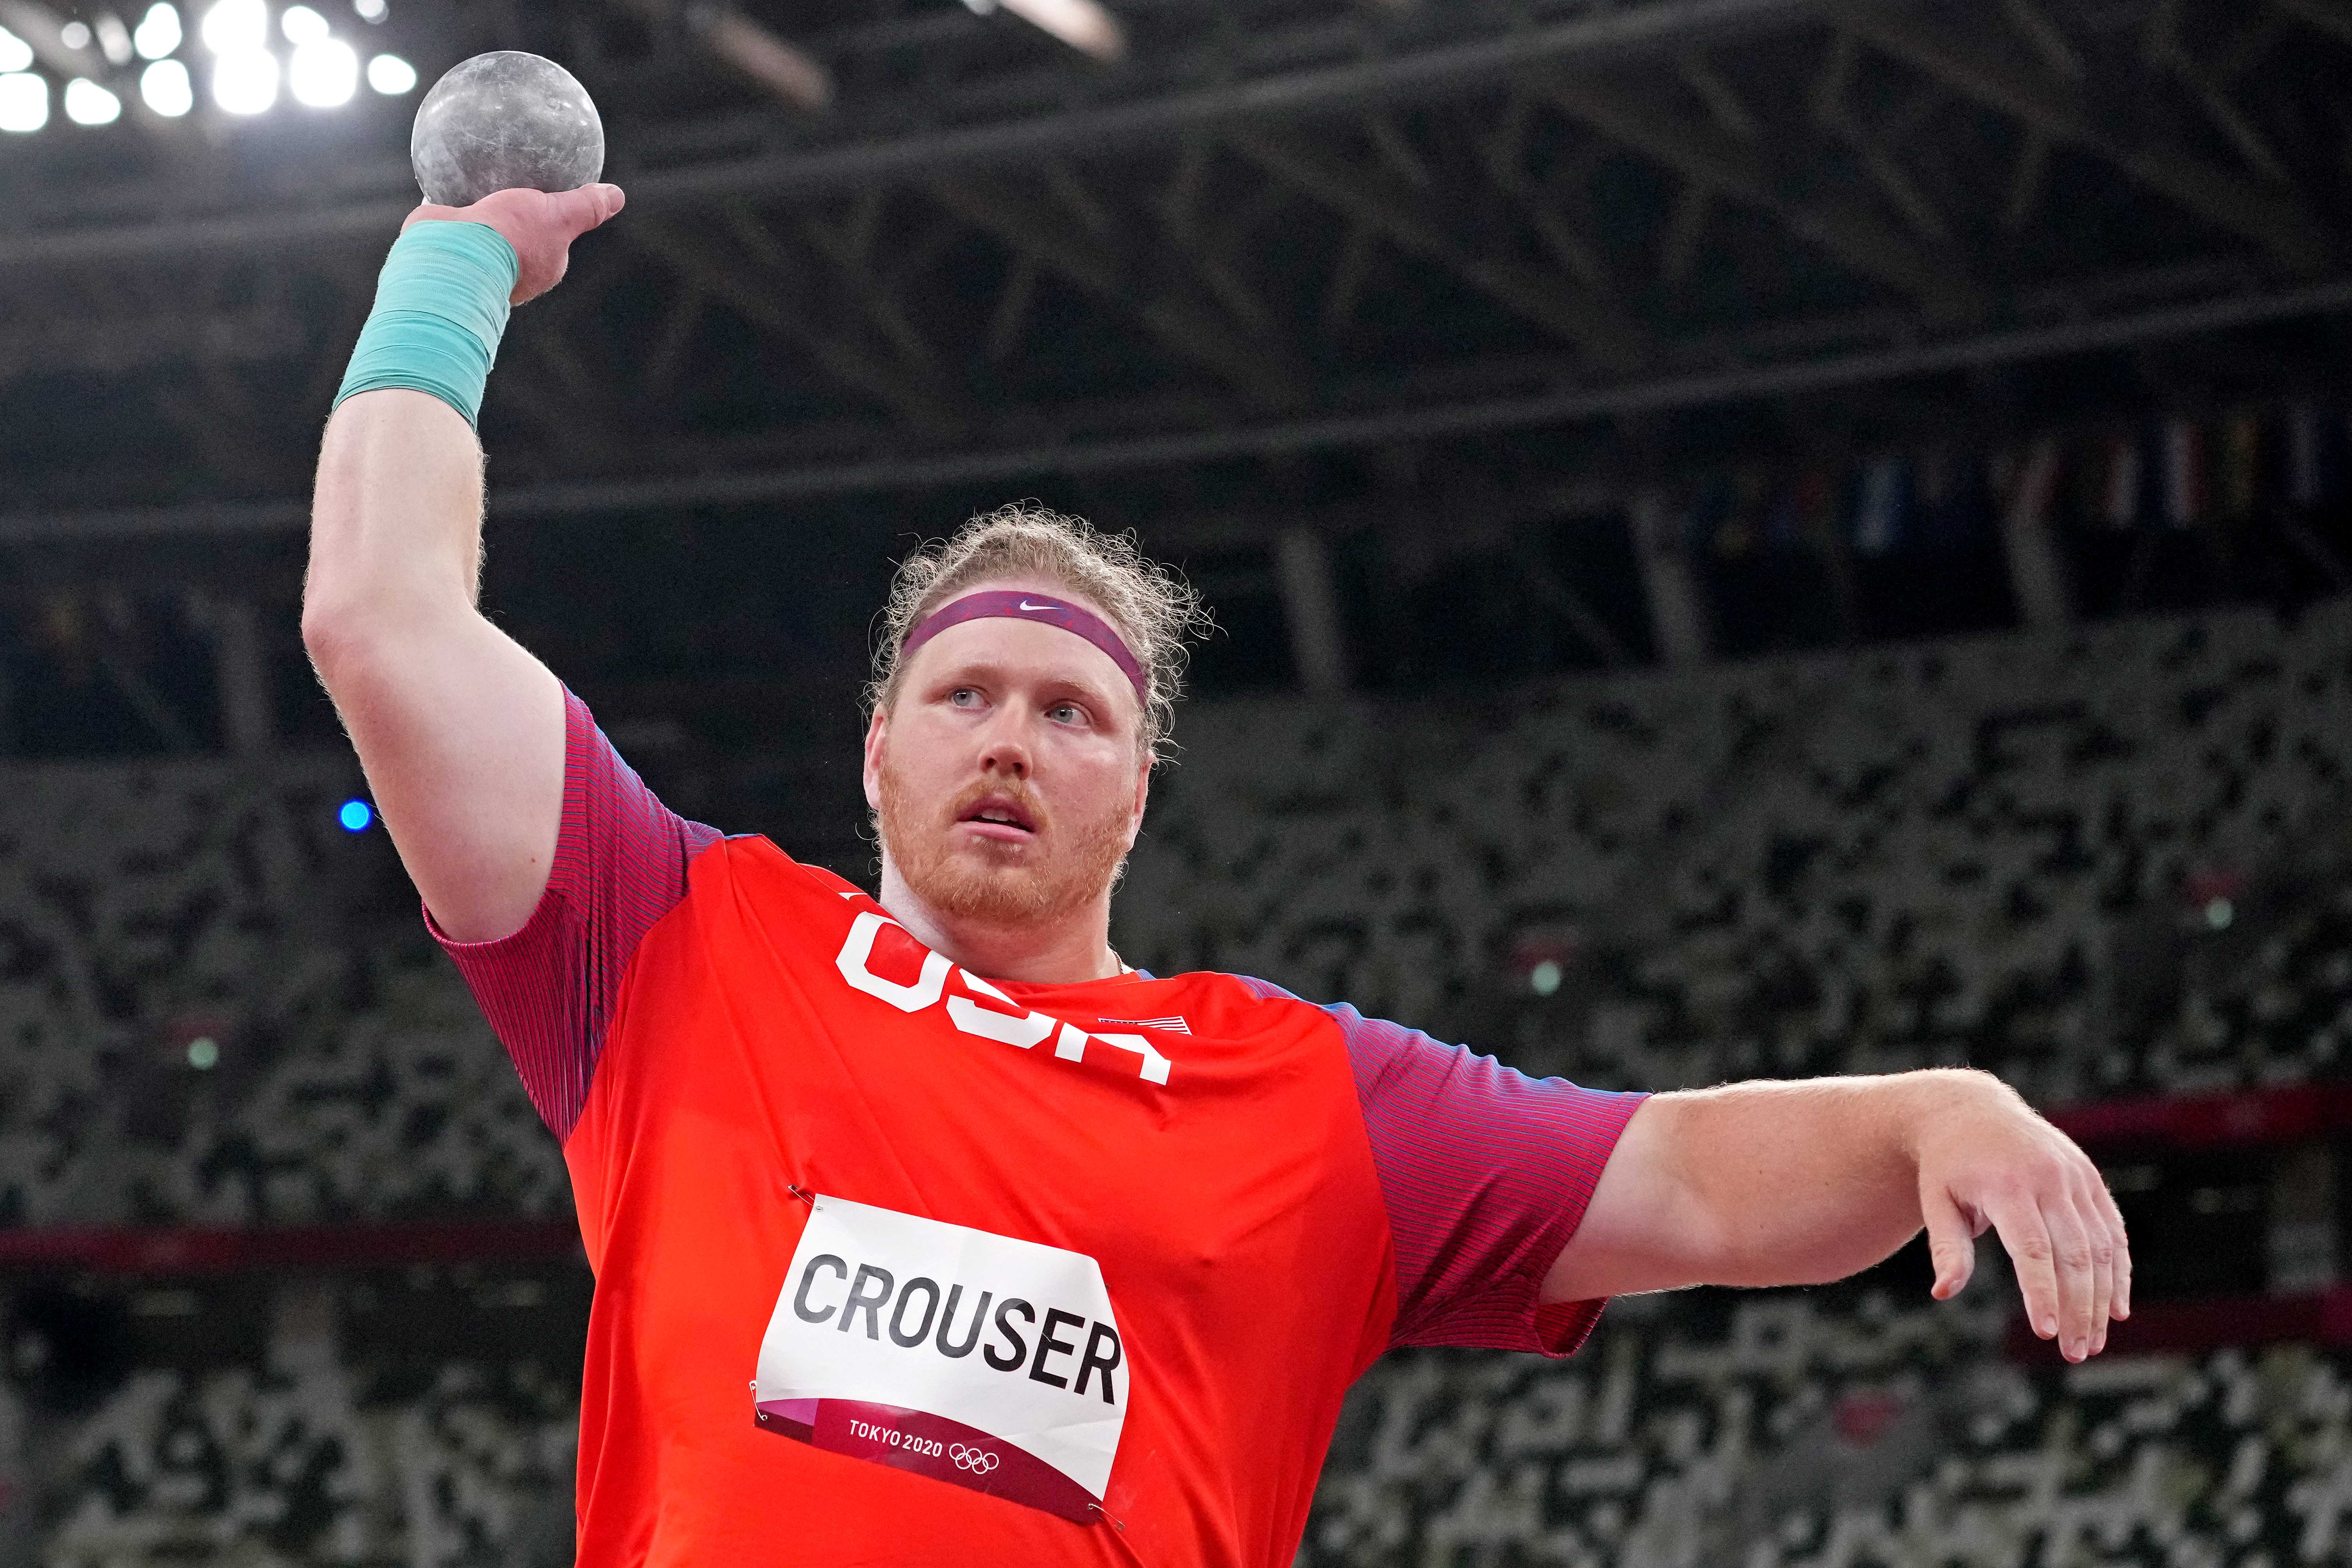 Ryan Crouser (USA) in the men's shot put qualifications during the Tokyo 2020 Olympic Summer Games at Olympic Stadium.